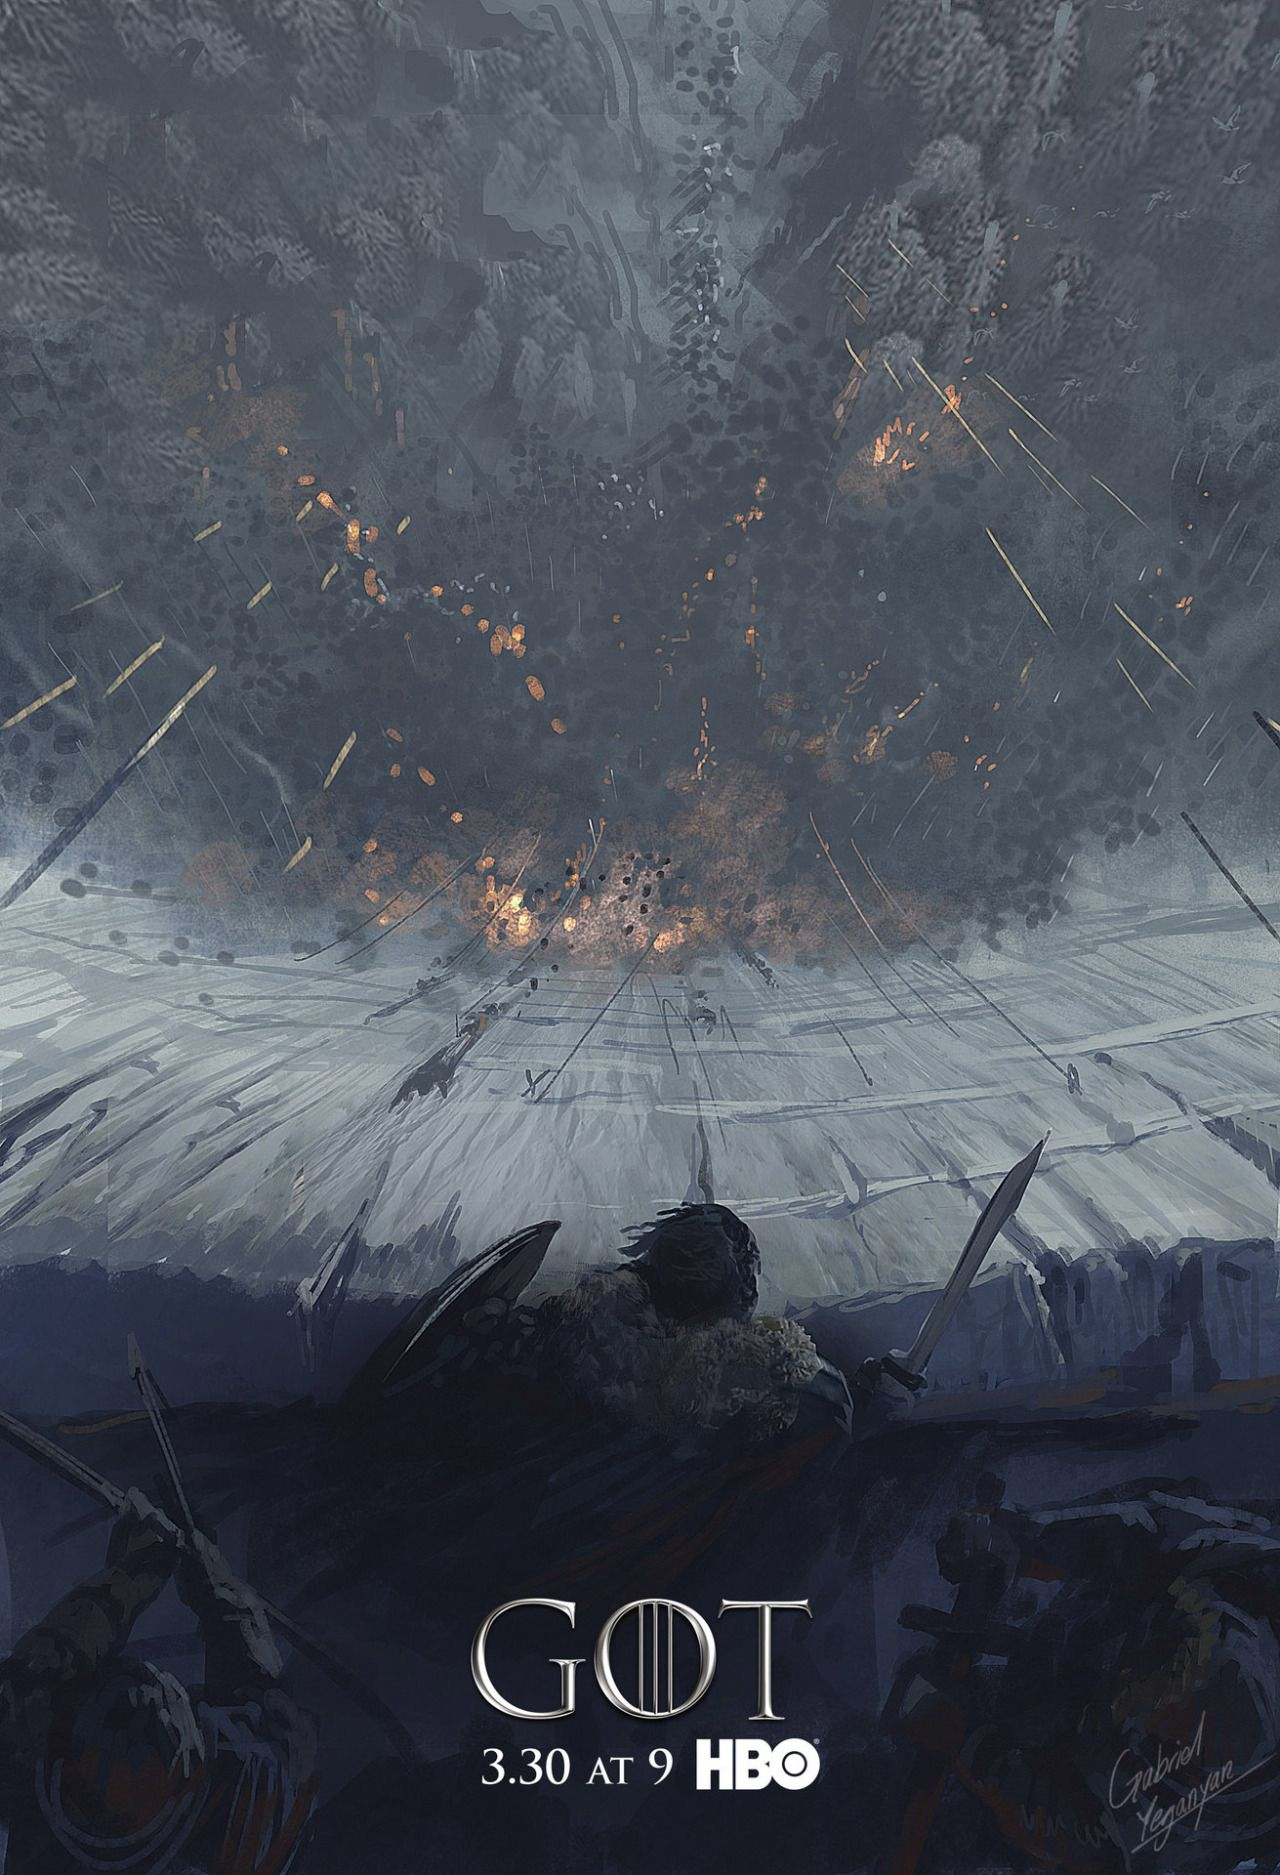 The Wall Fantastic Concept Poster Art For Hbo S Game Of Thrones